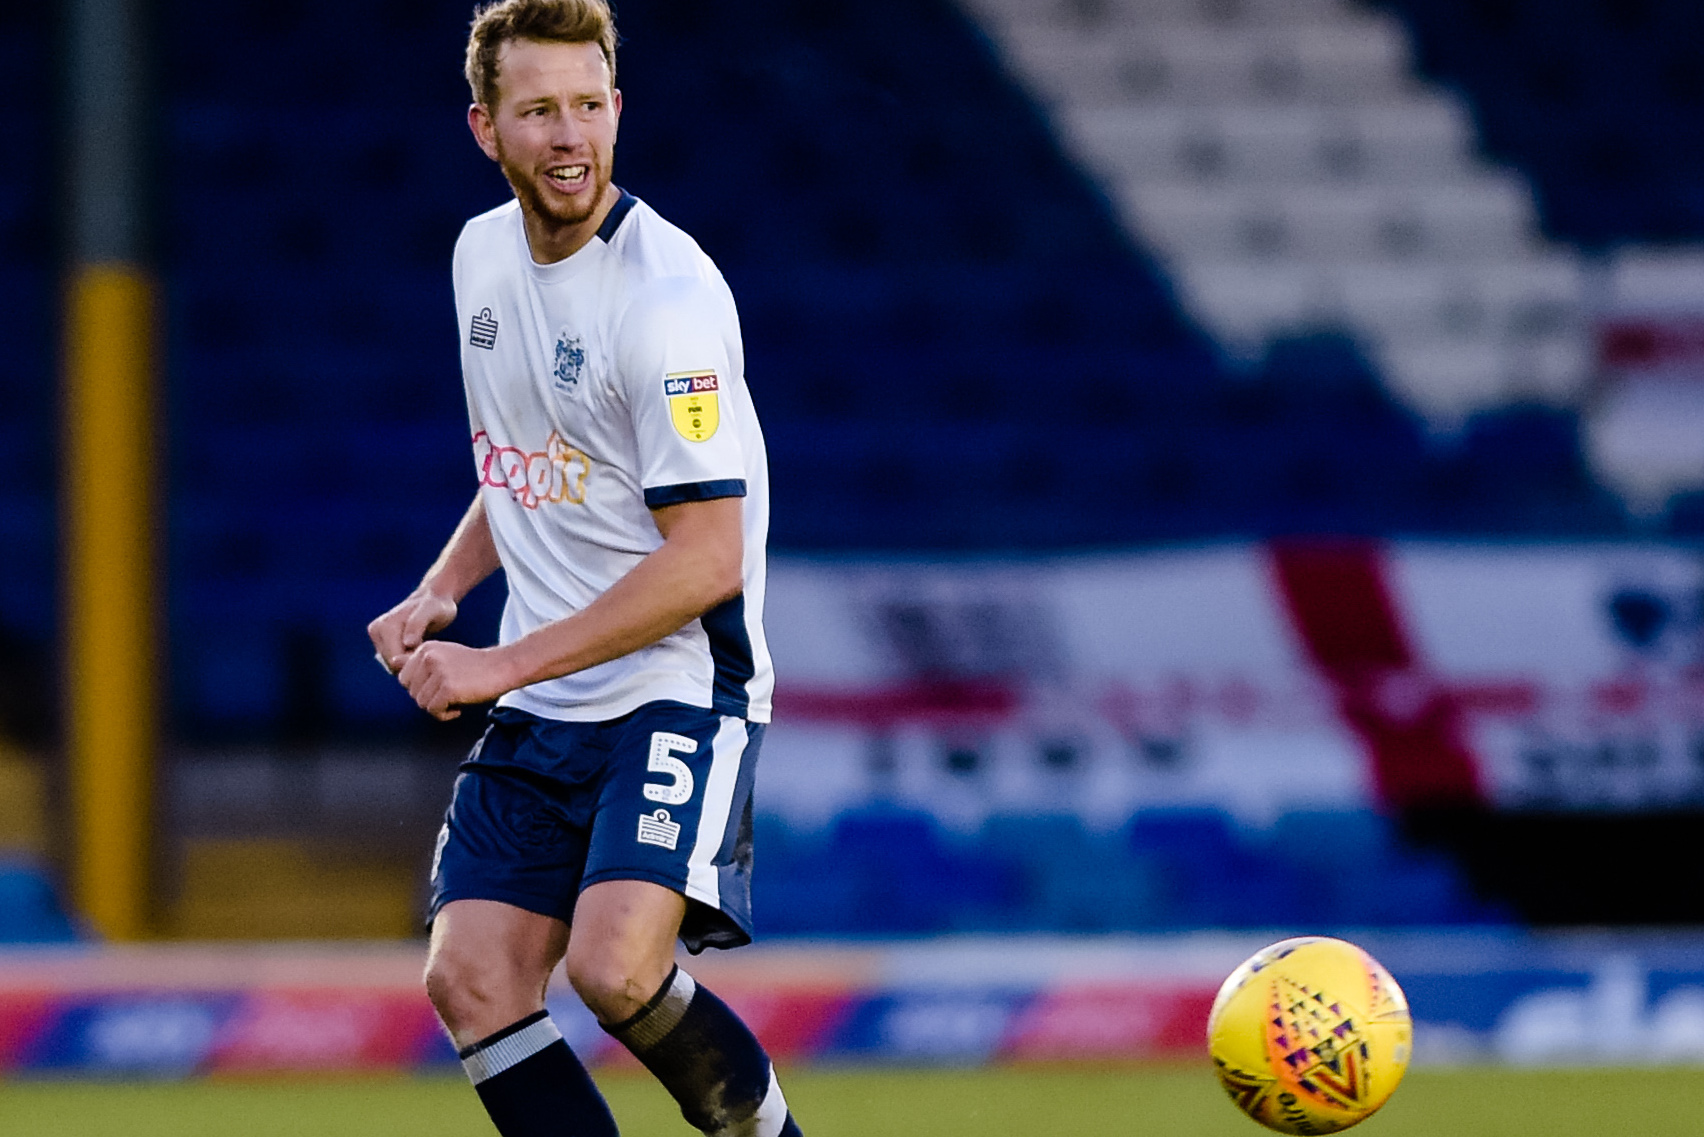 Shakers defender Thompson says Bury must remain upbeat for the run-in